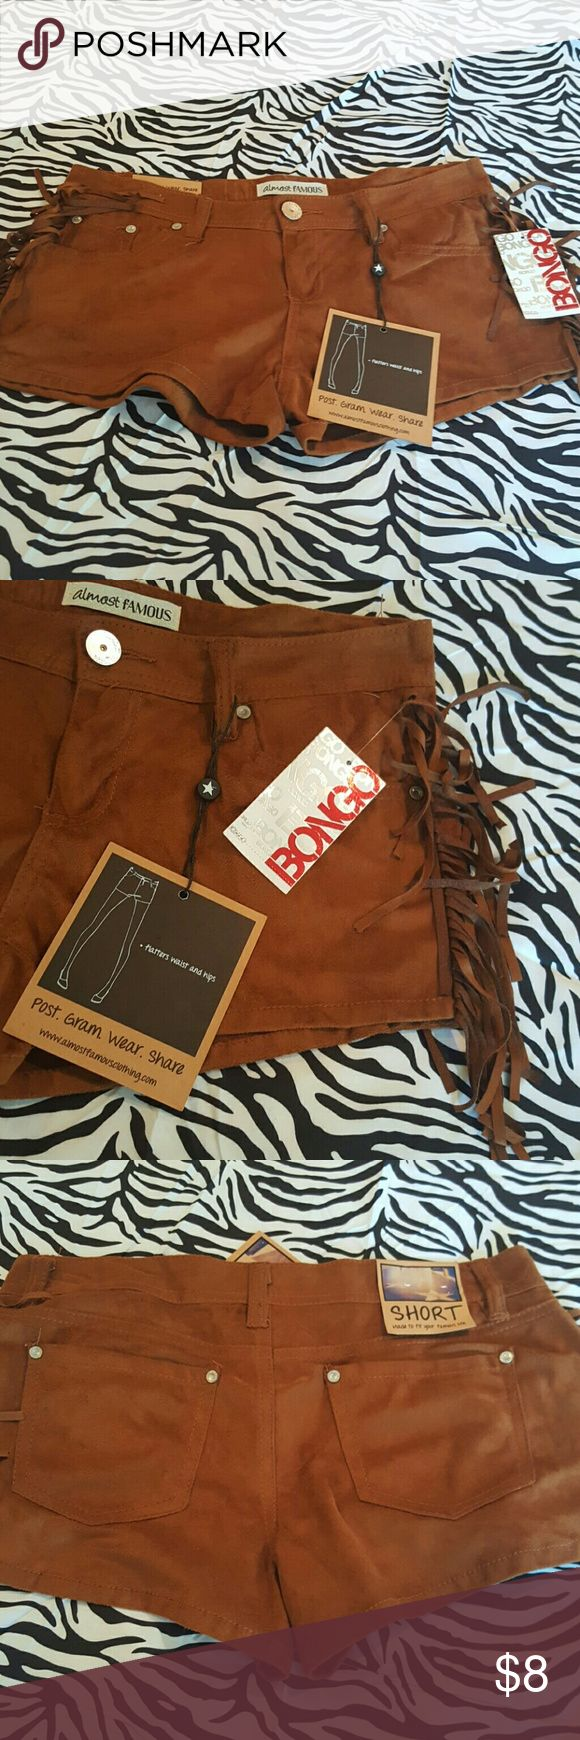 """Brand New w tags "" Bongo brown shorts w/fringes Brand new with tags Bongo brown shorts w fringes on sides. Message me for more info.  More clothing coming soon!!! 100% polyester. Size :5 BONGO Shorts"